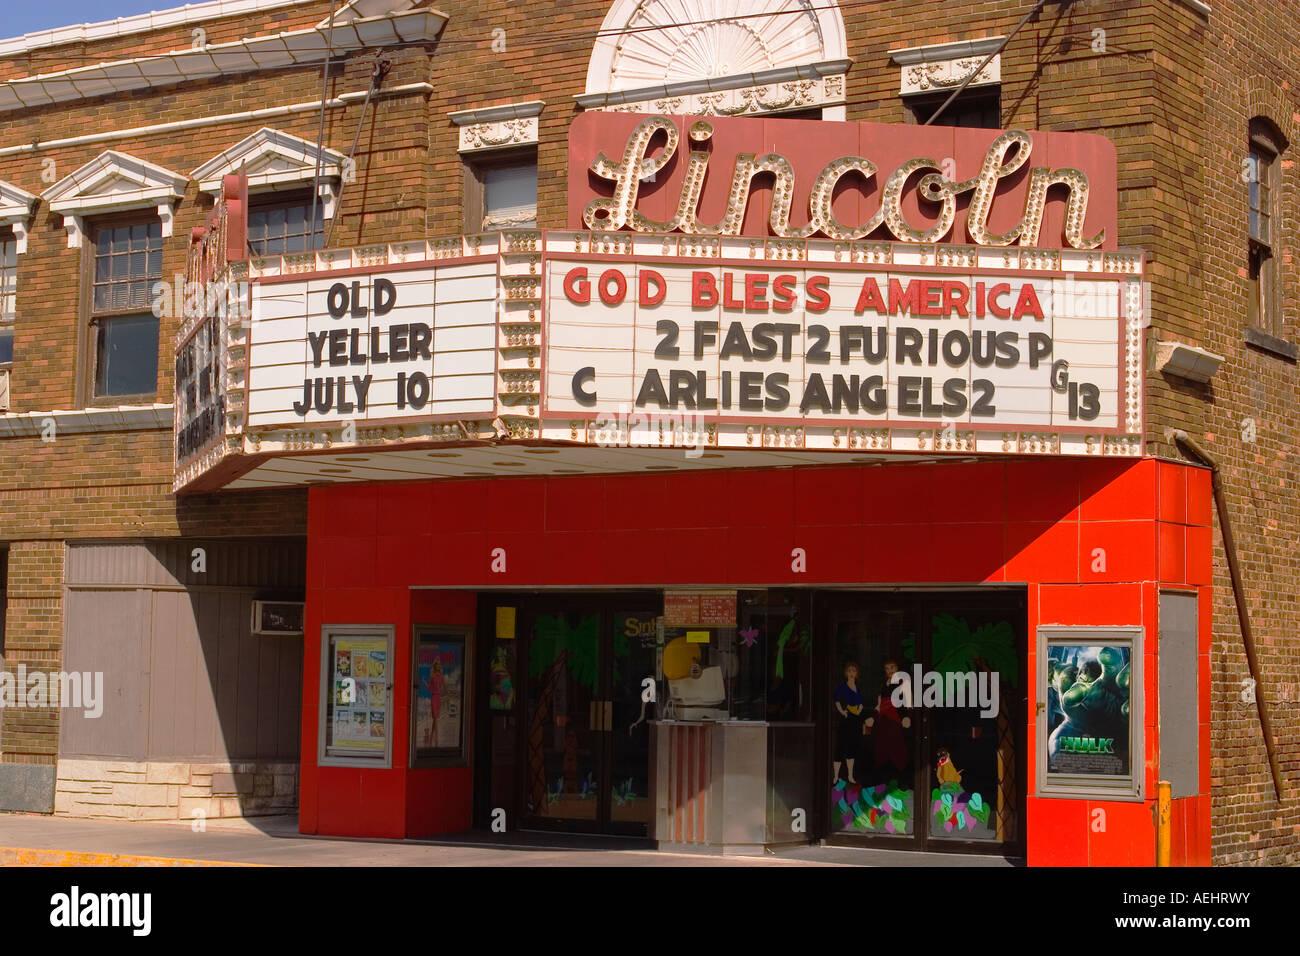 ILLINOIS Lincoln God Bless America and movie titles on cinema marquee in small town square - Stock Image